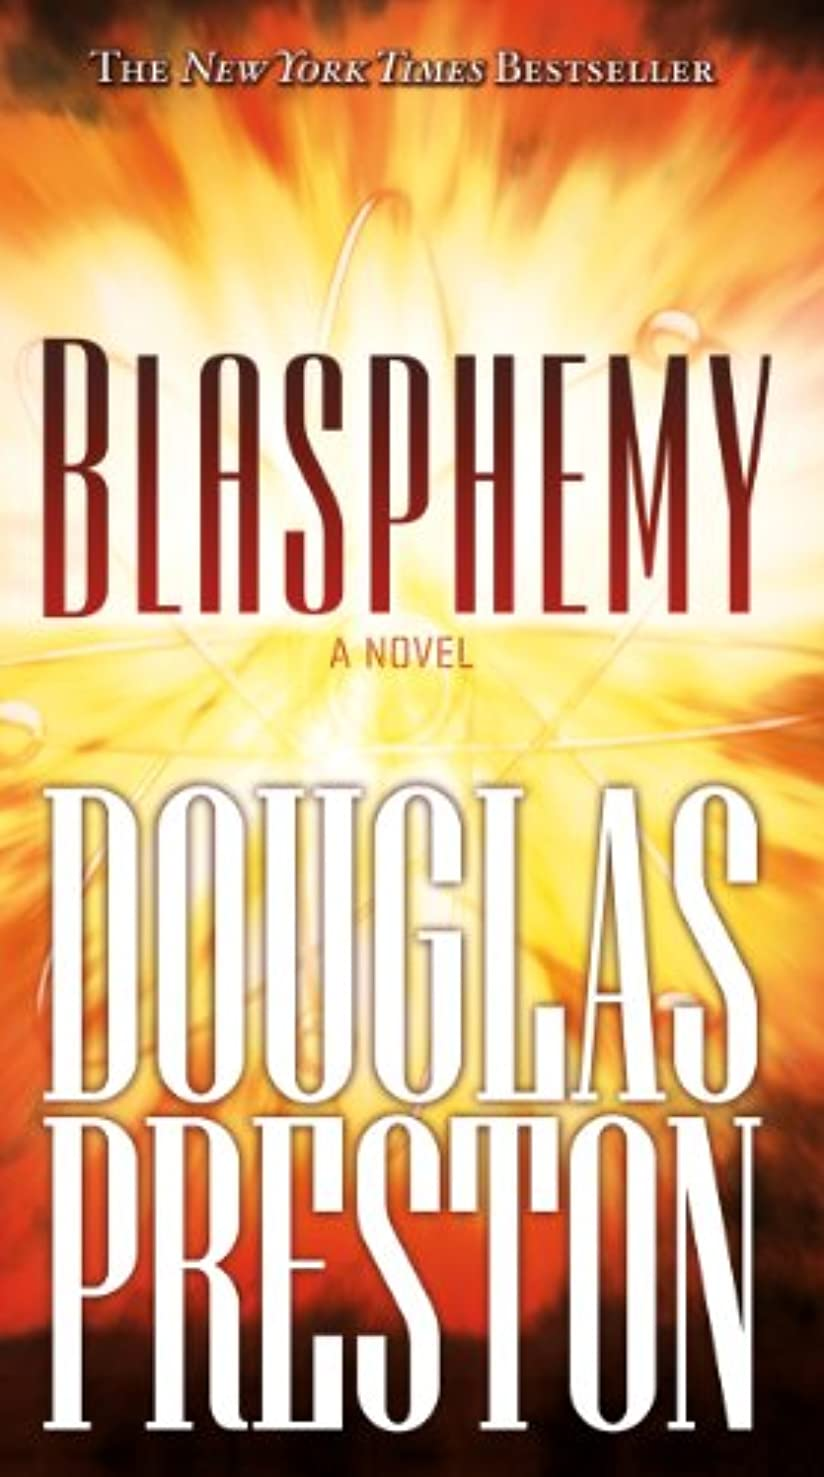 Blasphemy: A Novel (Wyman Ford Series Book 2)